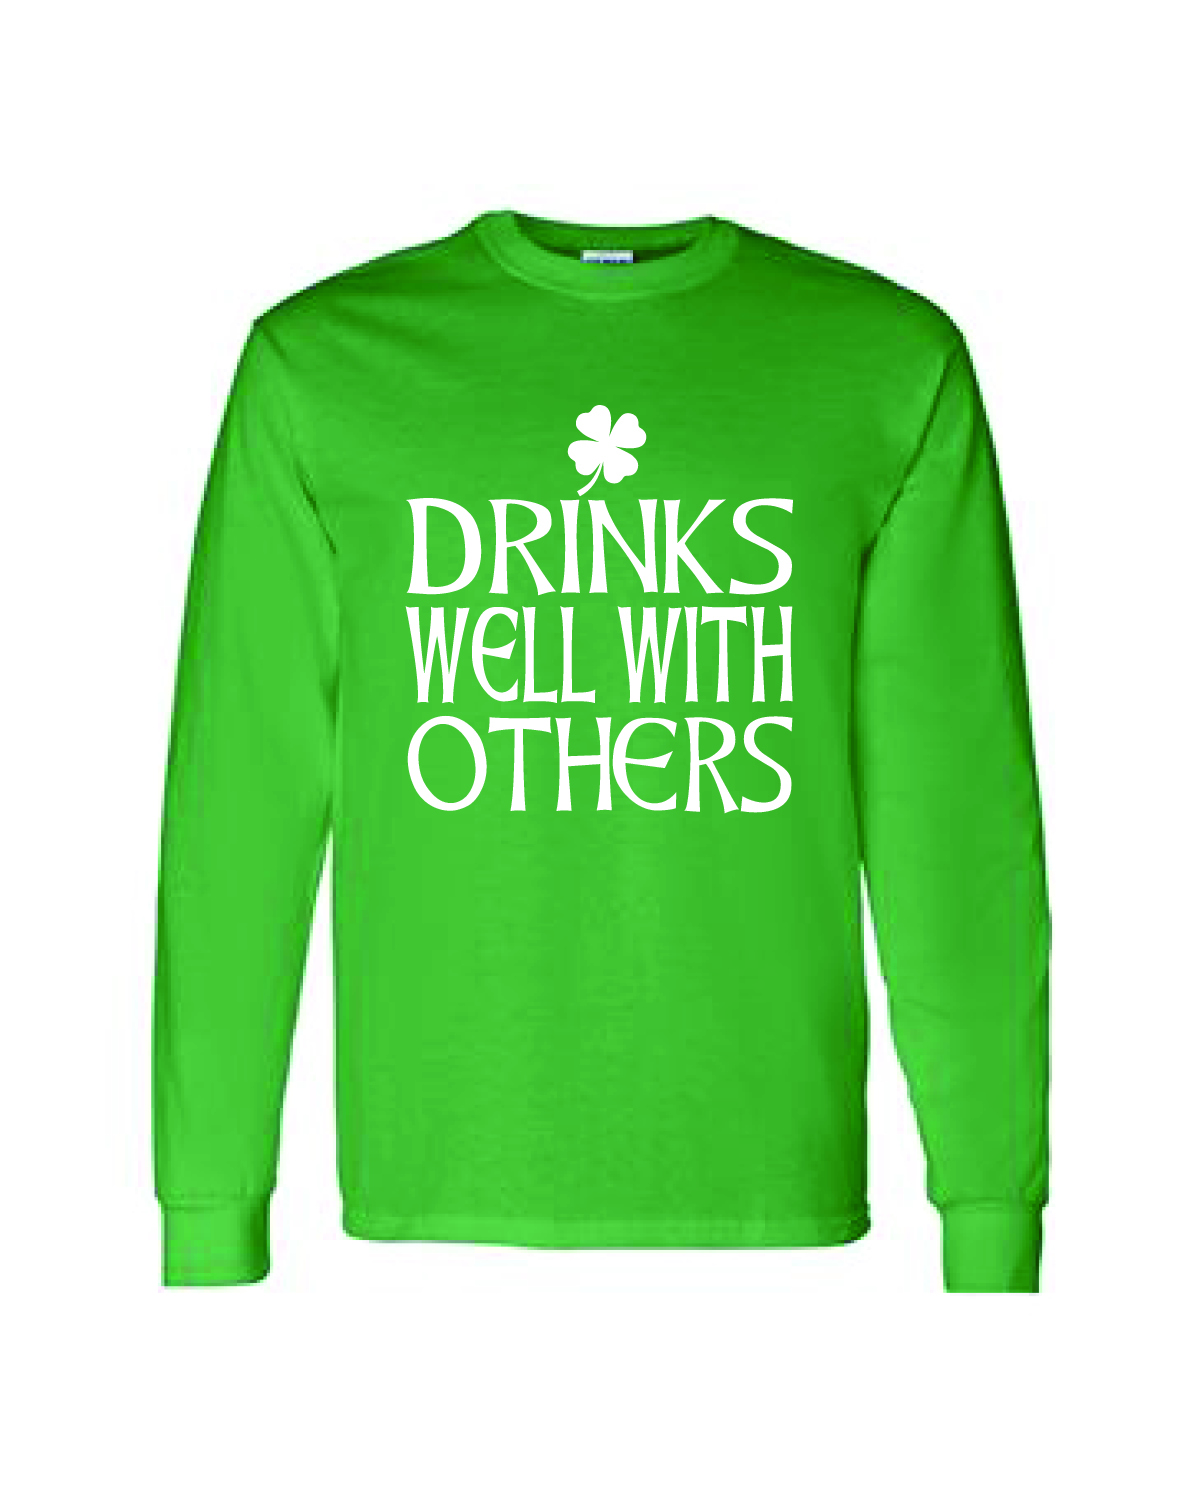 St. Patty's Day Long Sleeve Tee - Drinks Well